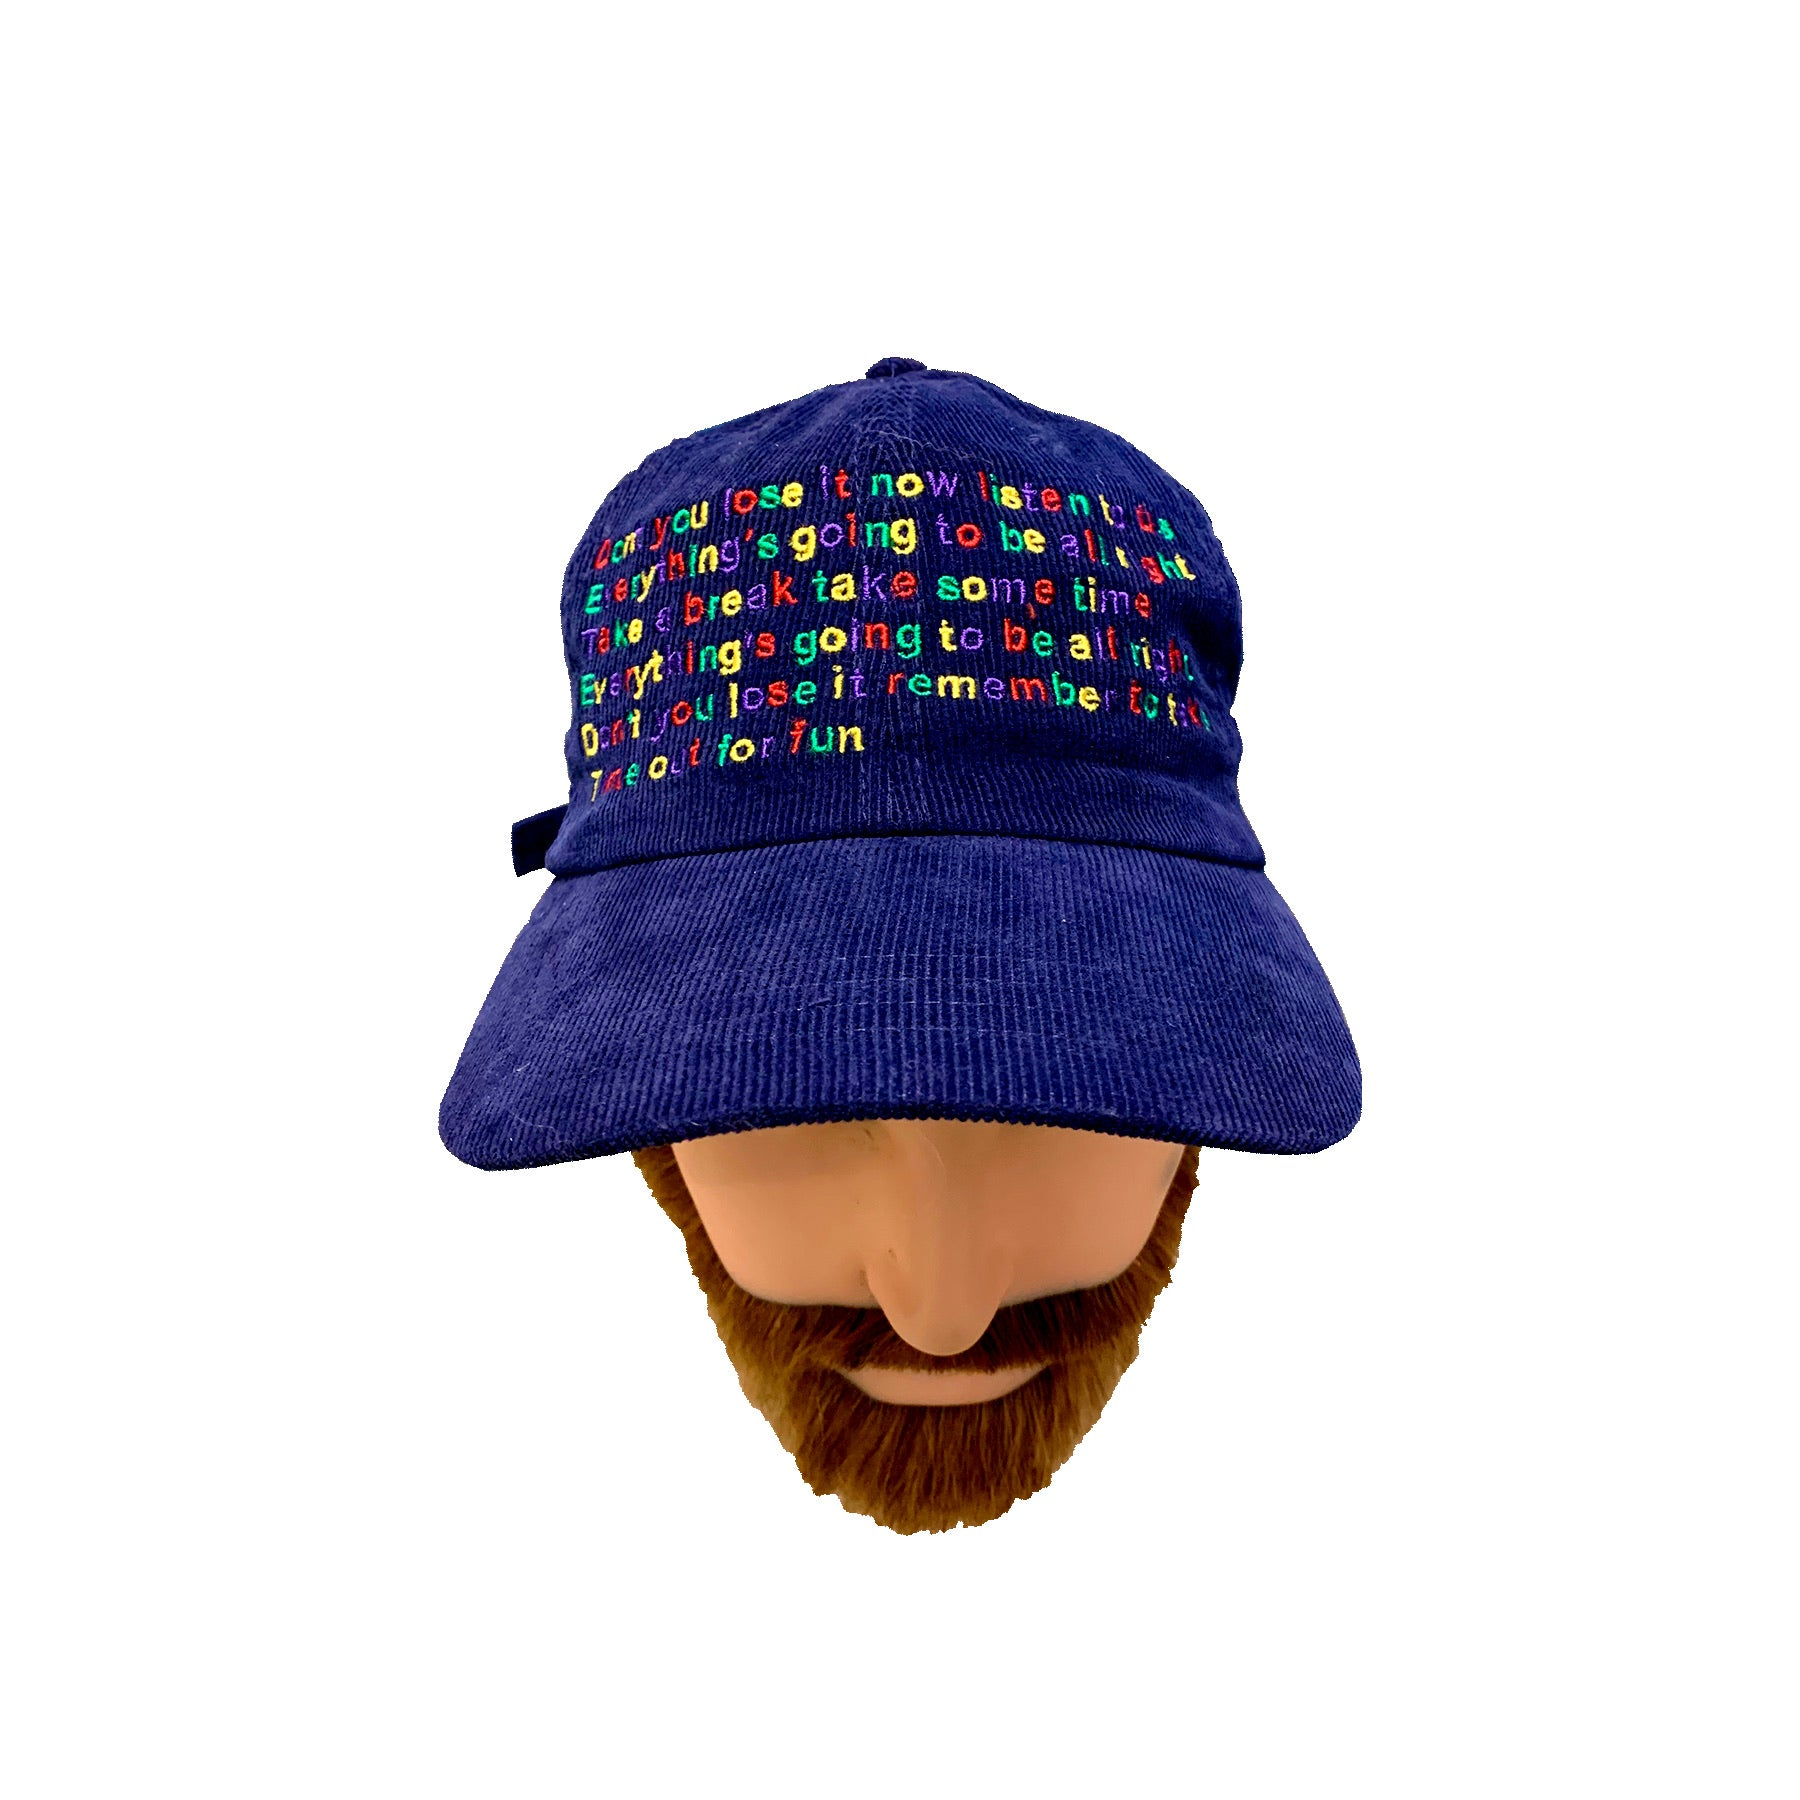 Time Out For Fun Hat (Unisex)